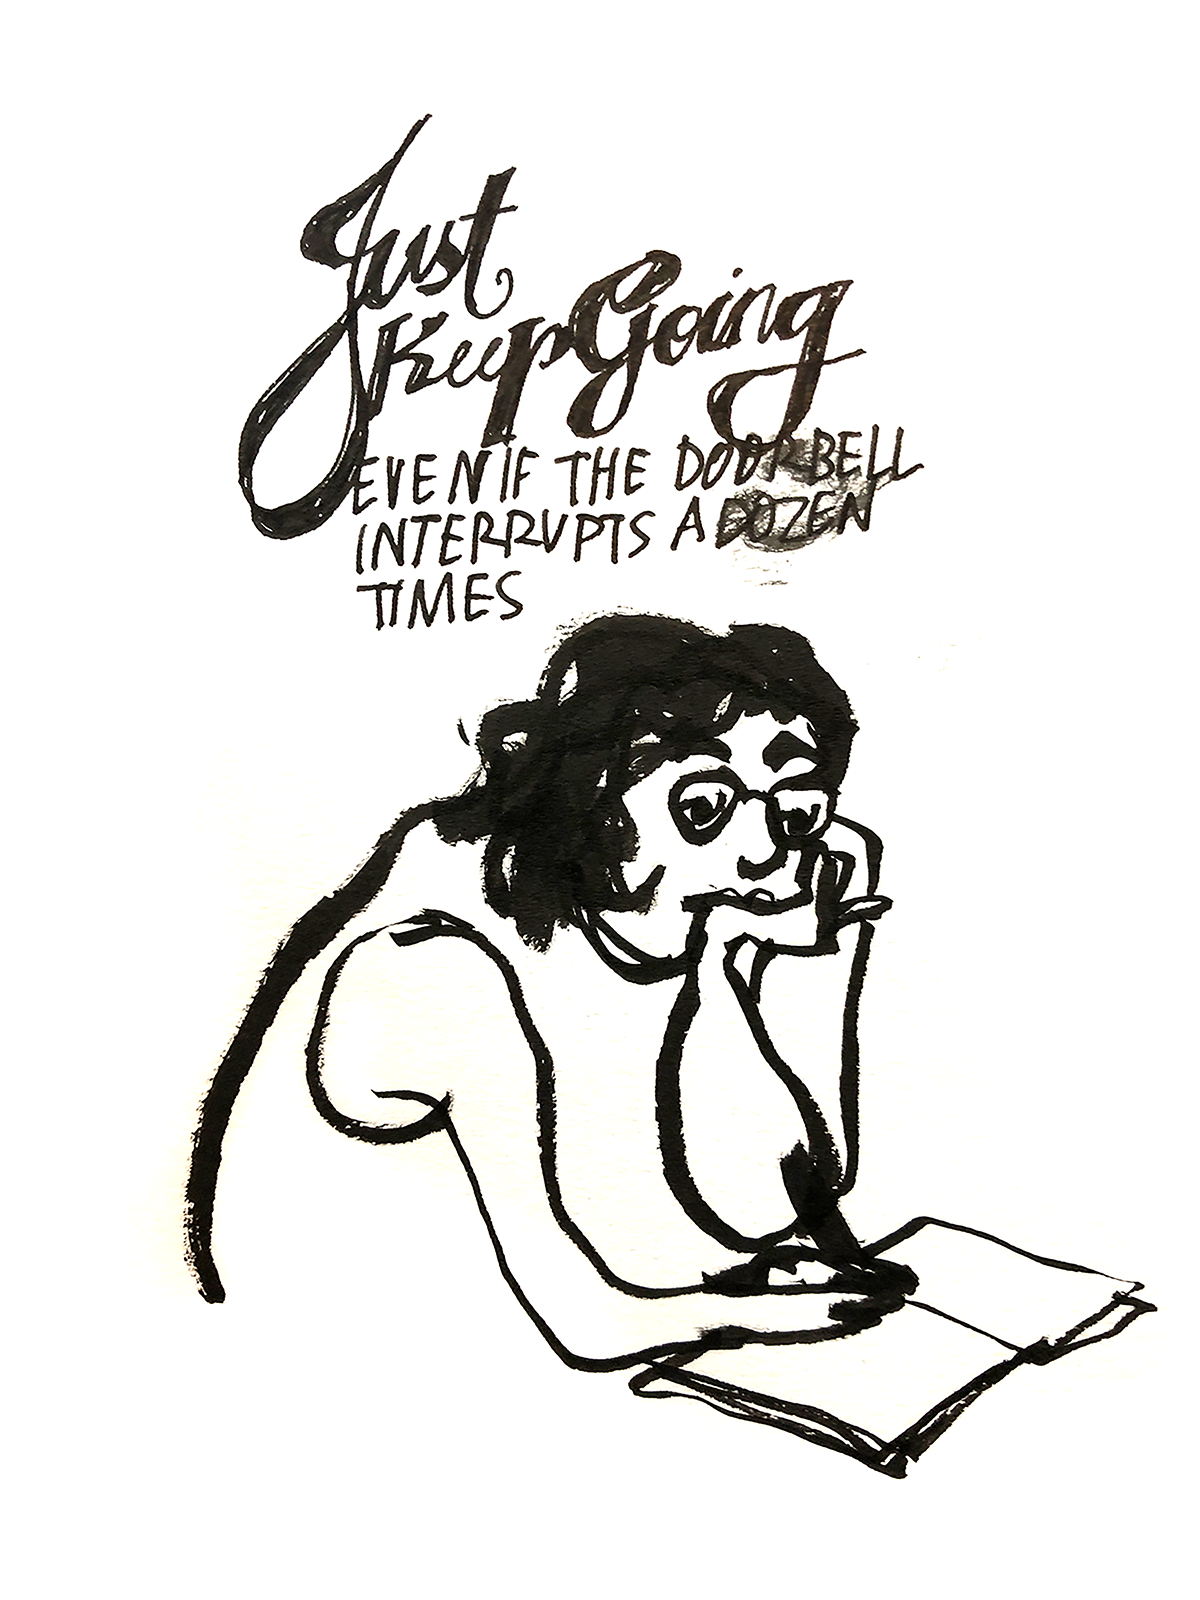 Soo drawing in a sketchbook and handwritten text says Just keep going even if the doorbell interrupts a dozen times